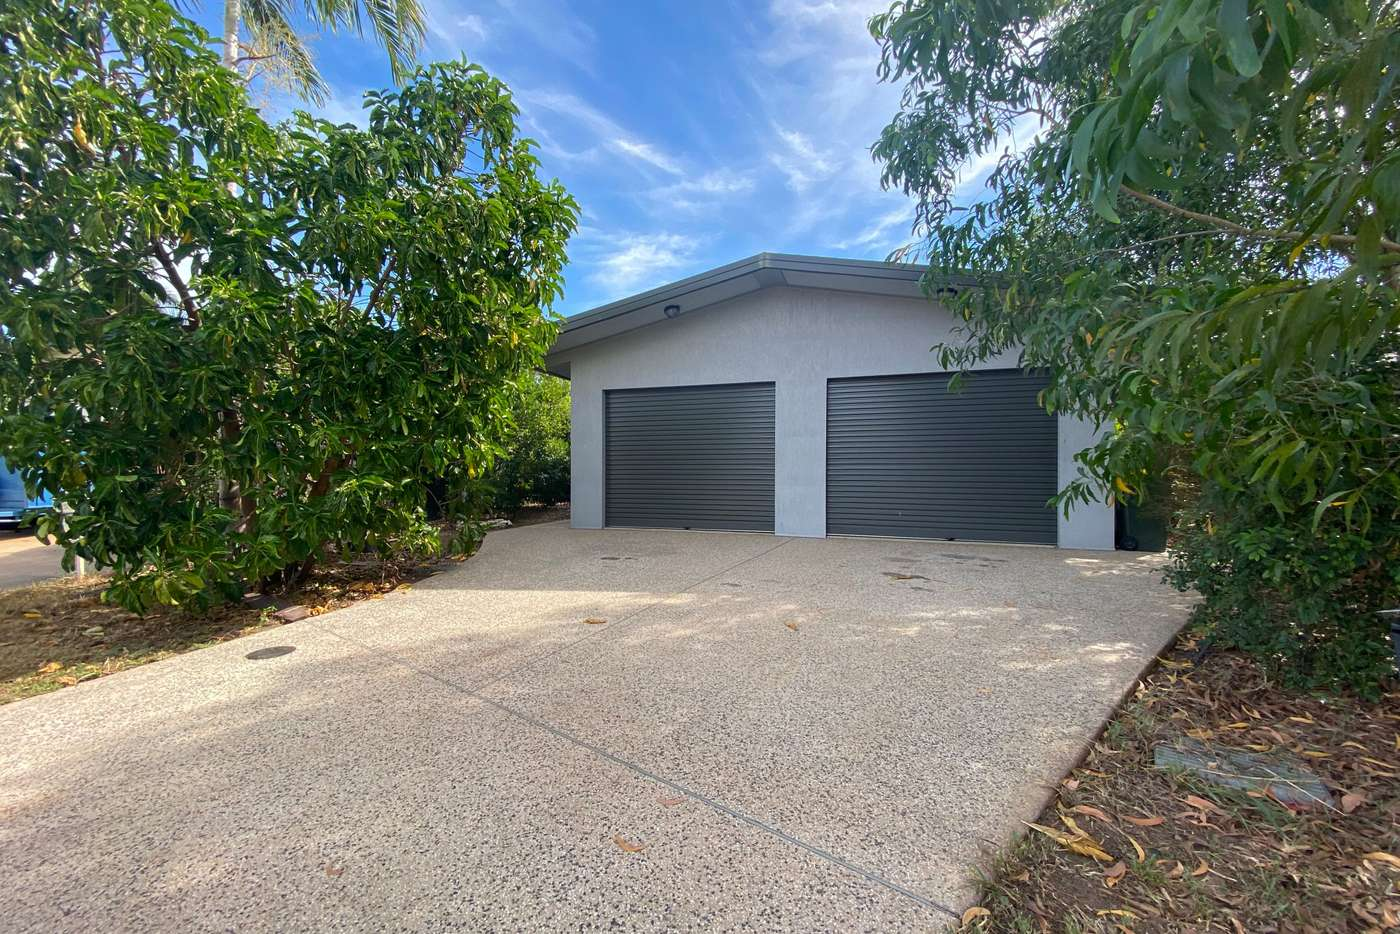 Main view of Homely house listing, 34 Bryden Street, Rosebery NT 832